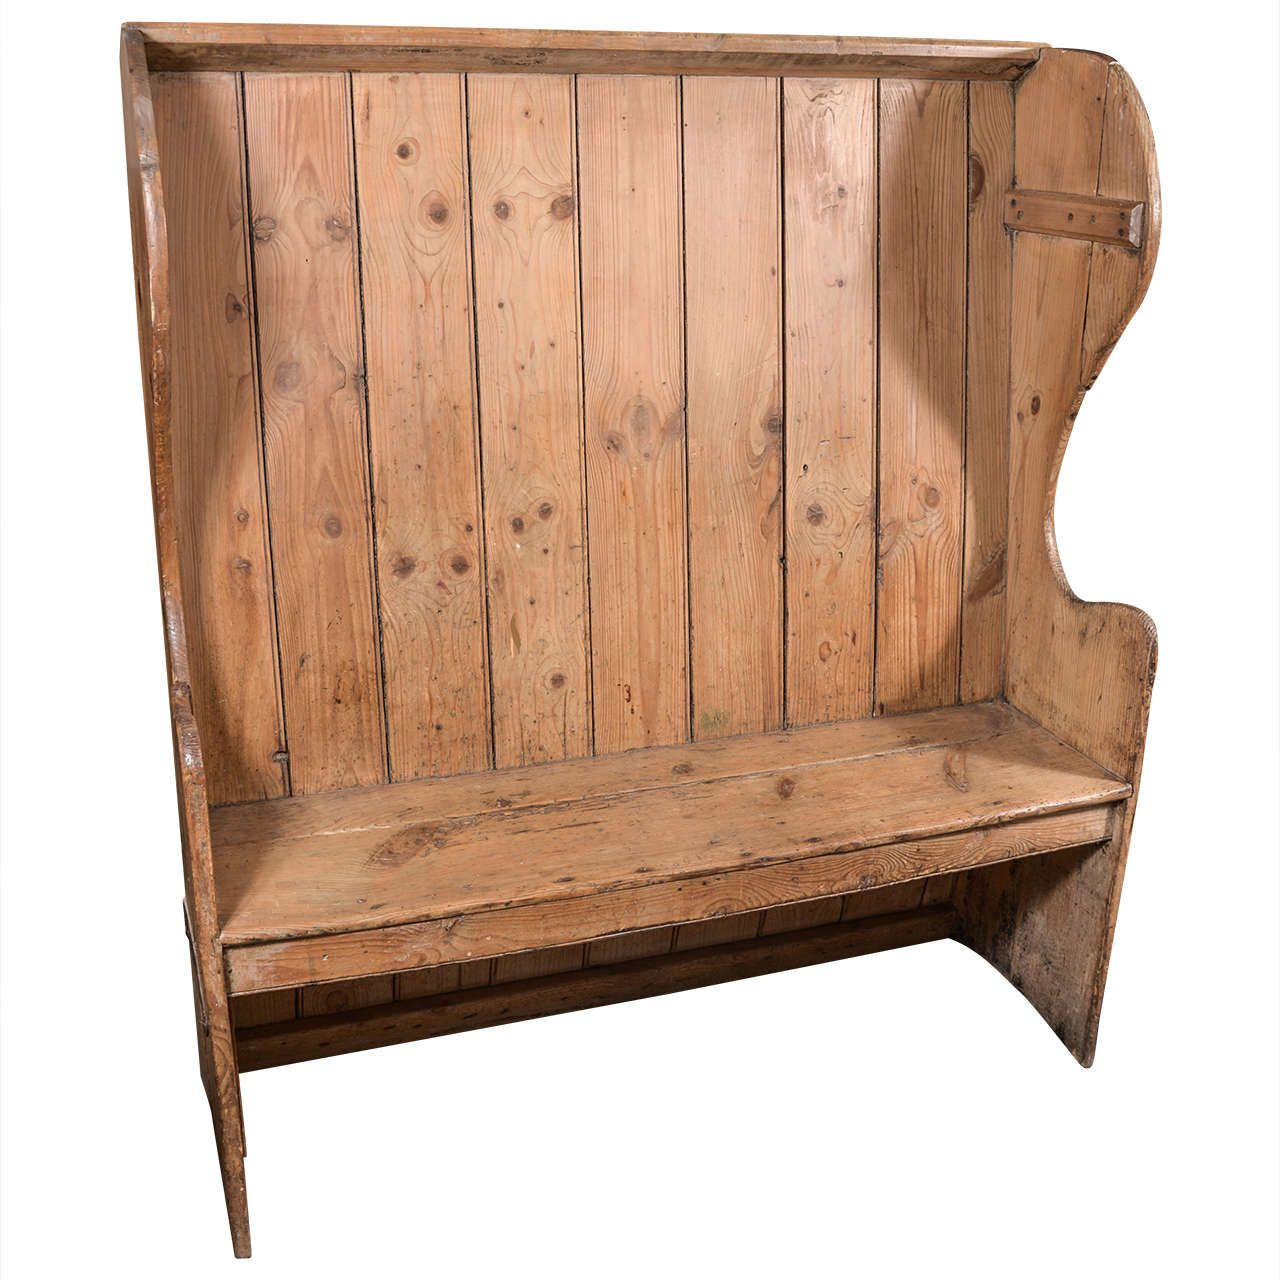 19th Century Pub Pine Settle with Free Standing